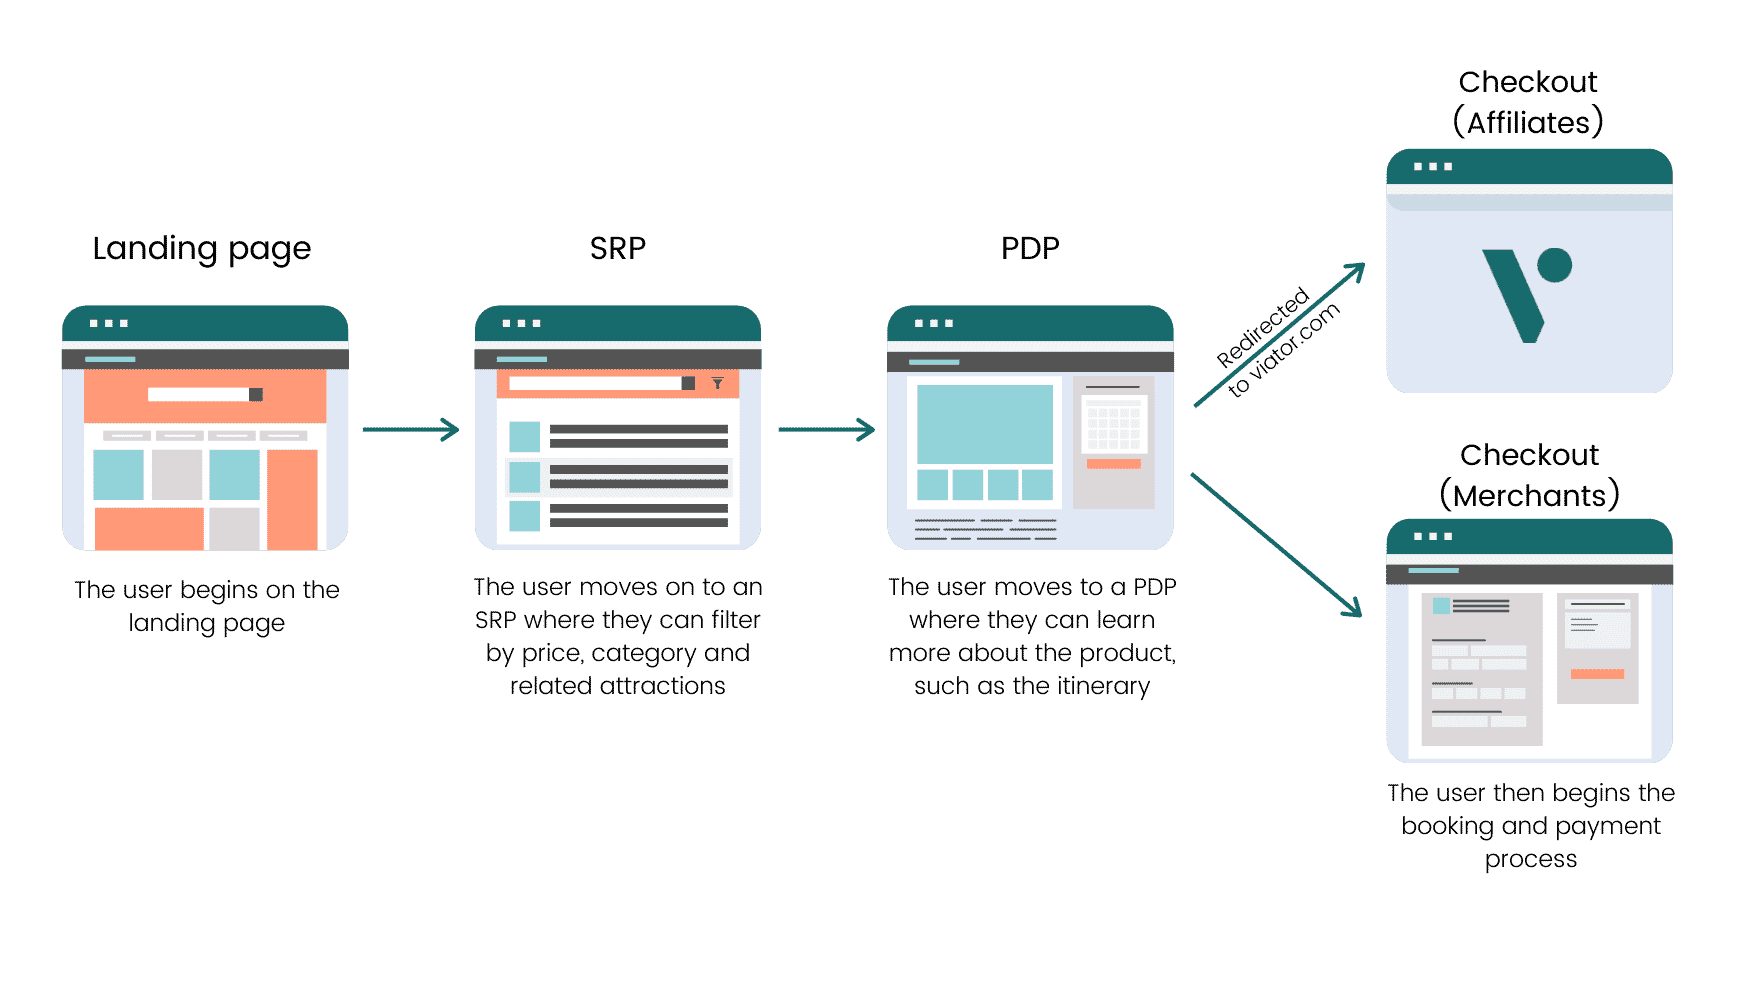 Front End Guide - User Flow